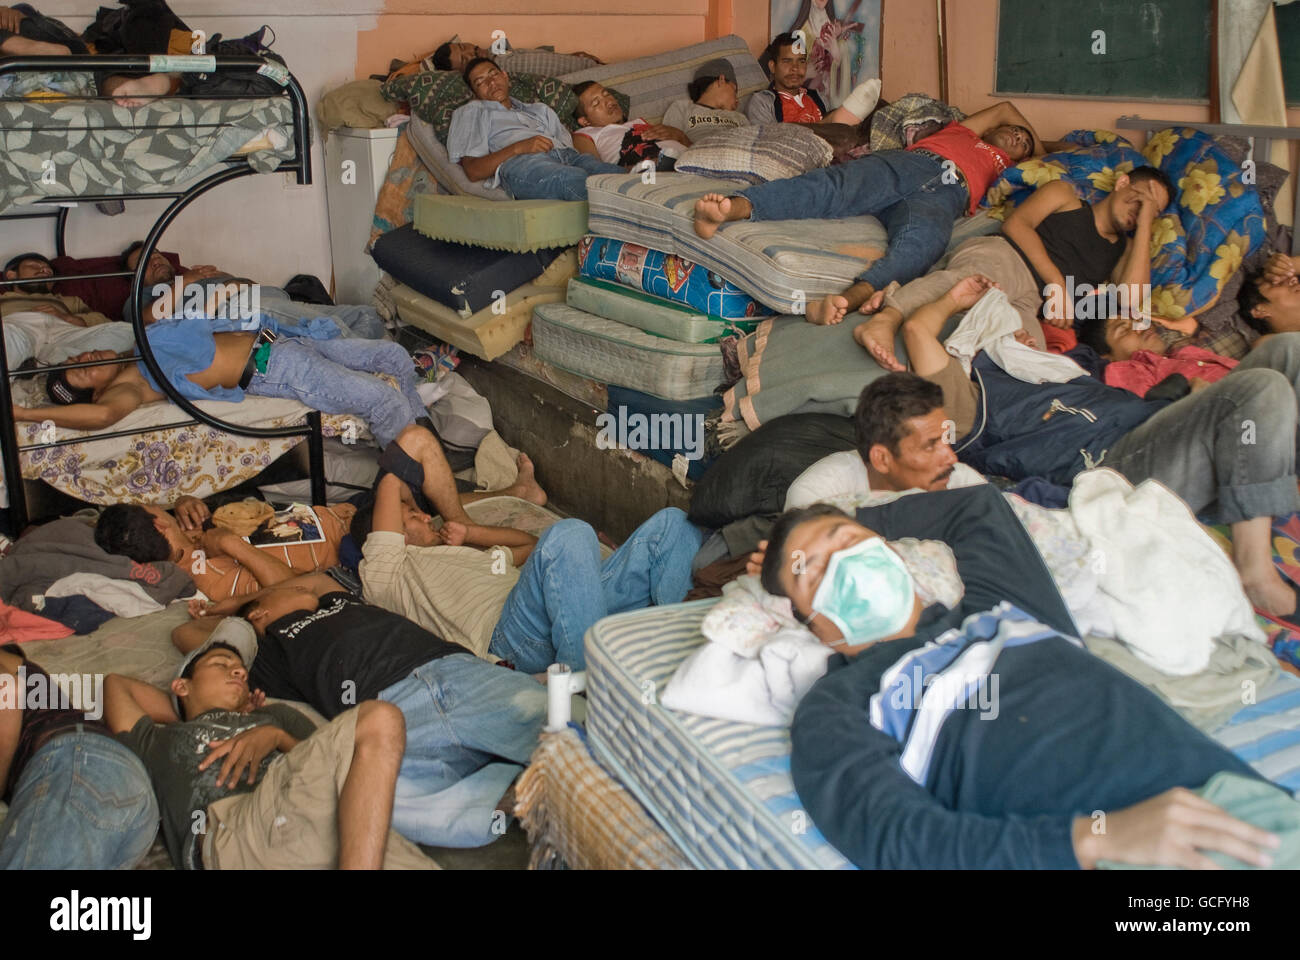 Central American migrants live together at a shelter in Tultitlan, Mexico in extremely overcrowded conditions. - Stock Image